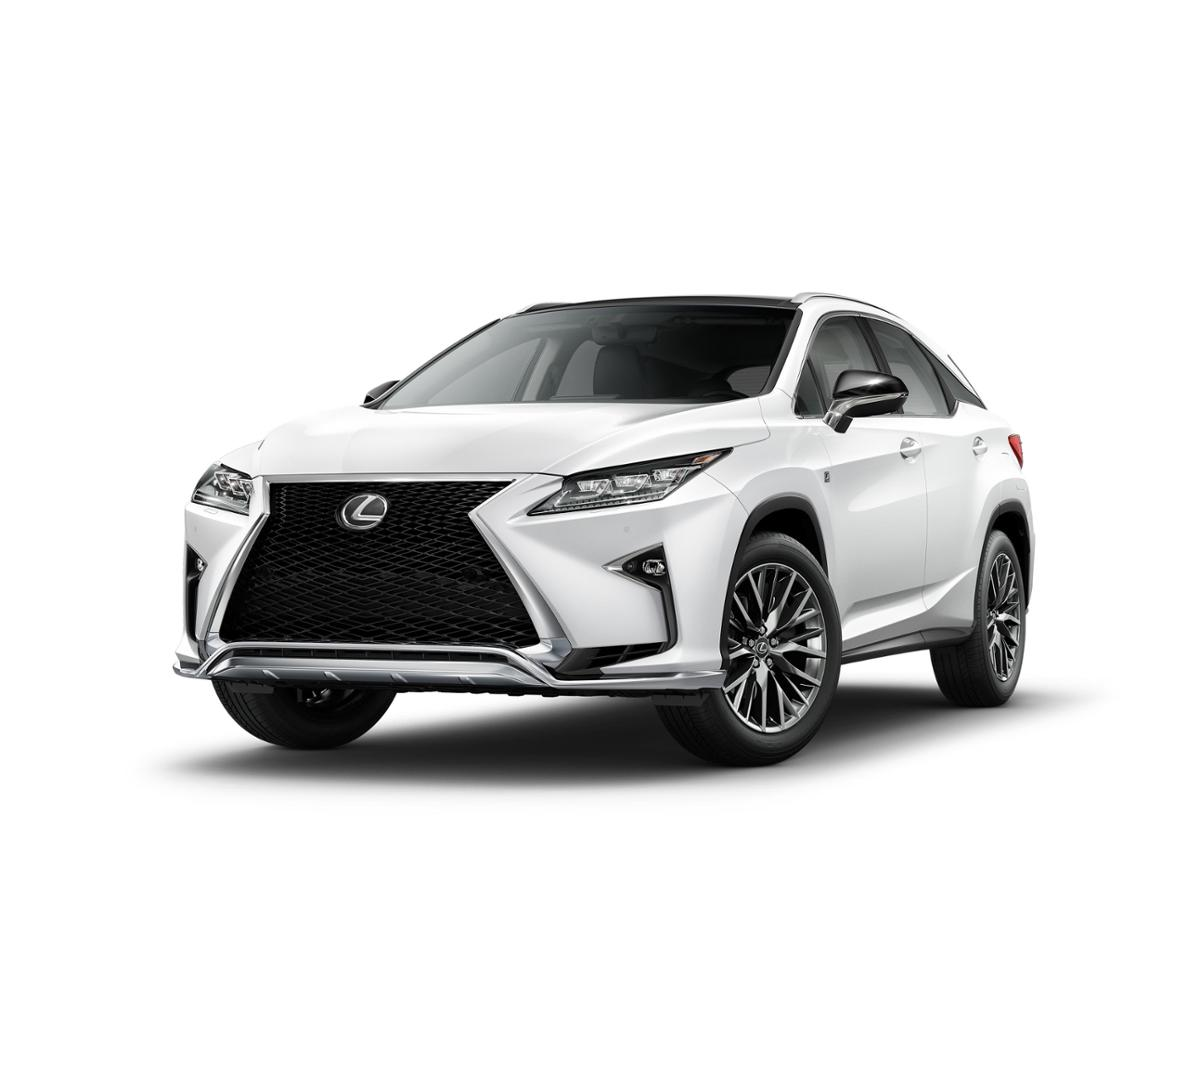 2017 lexus rx 350 f sport in ultra white for sale in ca 2t2zzmca3hc054785. Black Bedroom Furniture Sets. Home Design Ideas